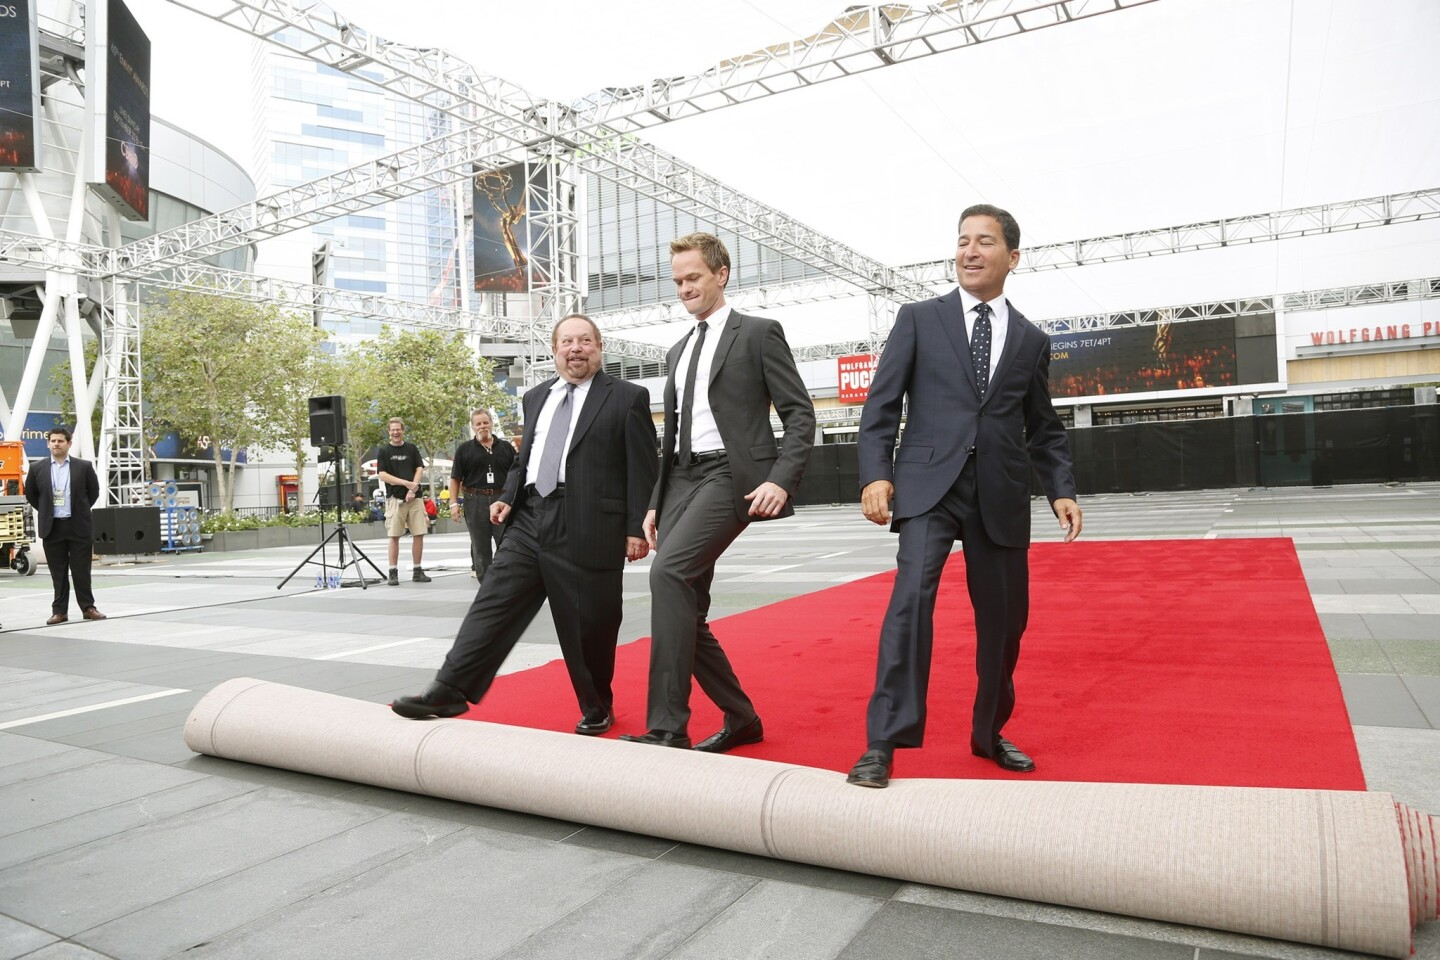 From left, Ken Ehrlich, Television Academy chairman and co-producer of this year's telecast; Neil Patrick Harris, this year's host and co-producer; and Academy of Television Arts & Sciences CEO Bruce Rosenblum roll out the red carpet for the 65th Primetime Emmy Awards at the Nokia Theatre Sunday, airing live on CBS at 5 p.m. PDT.